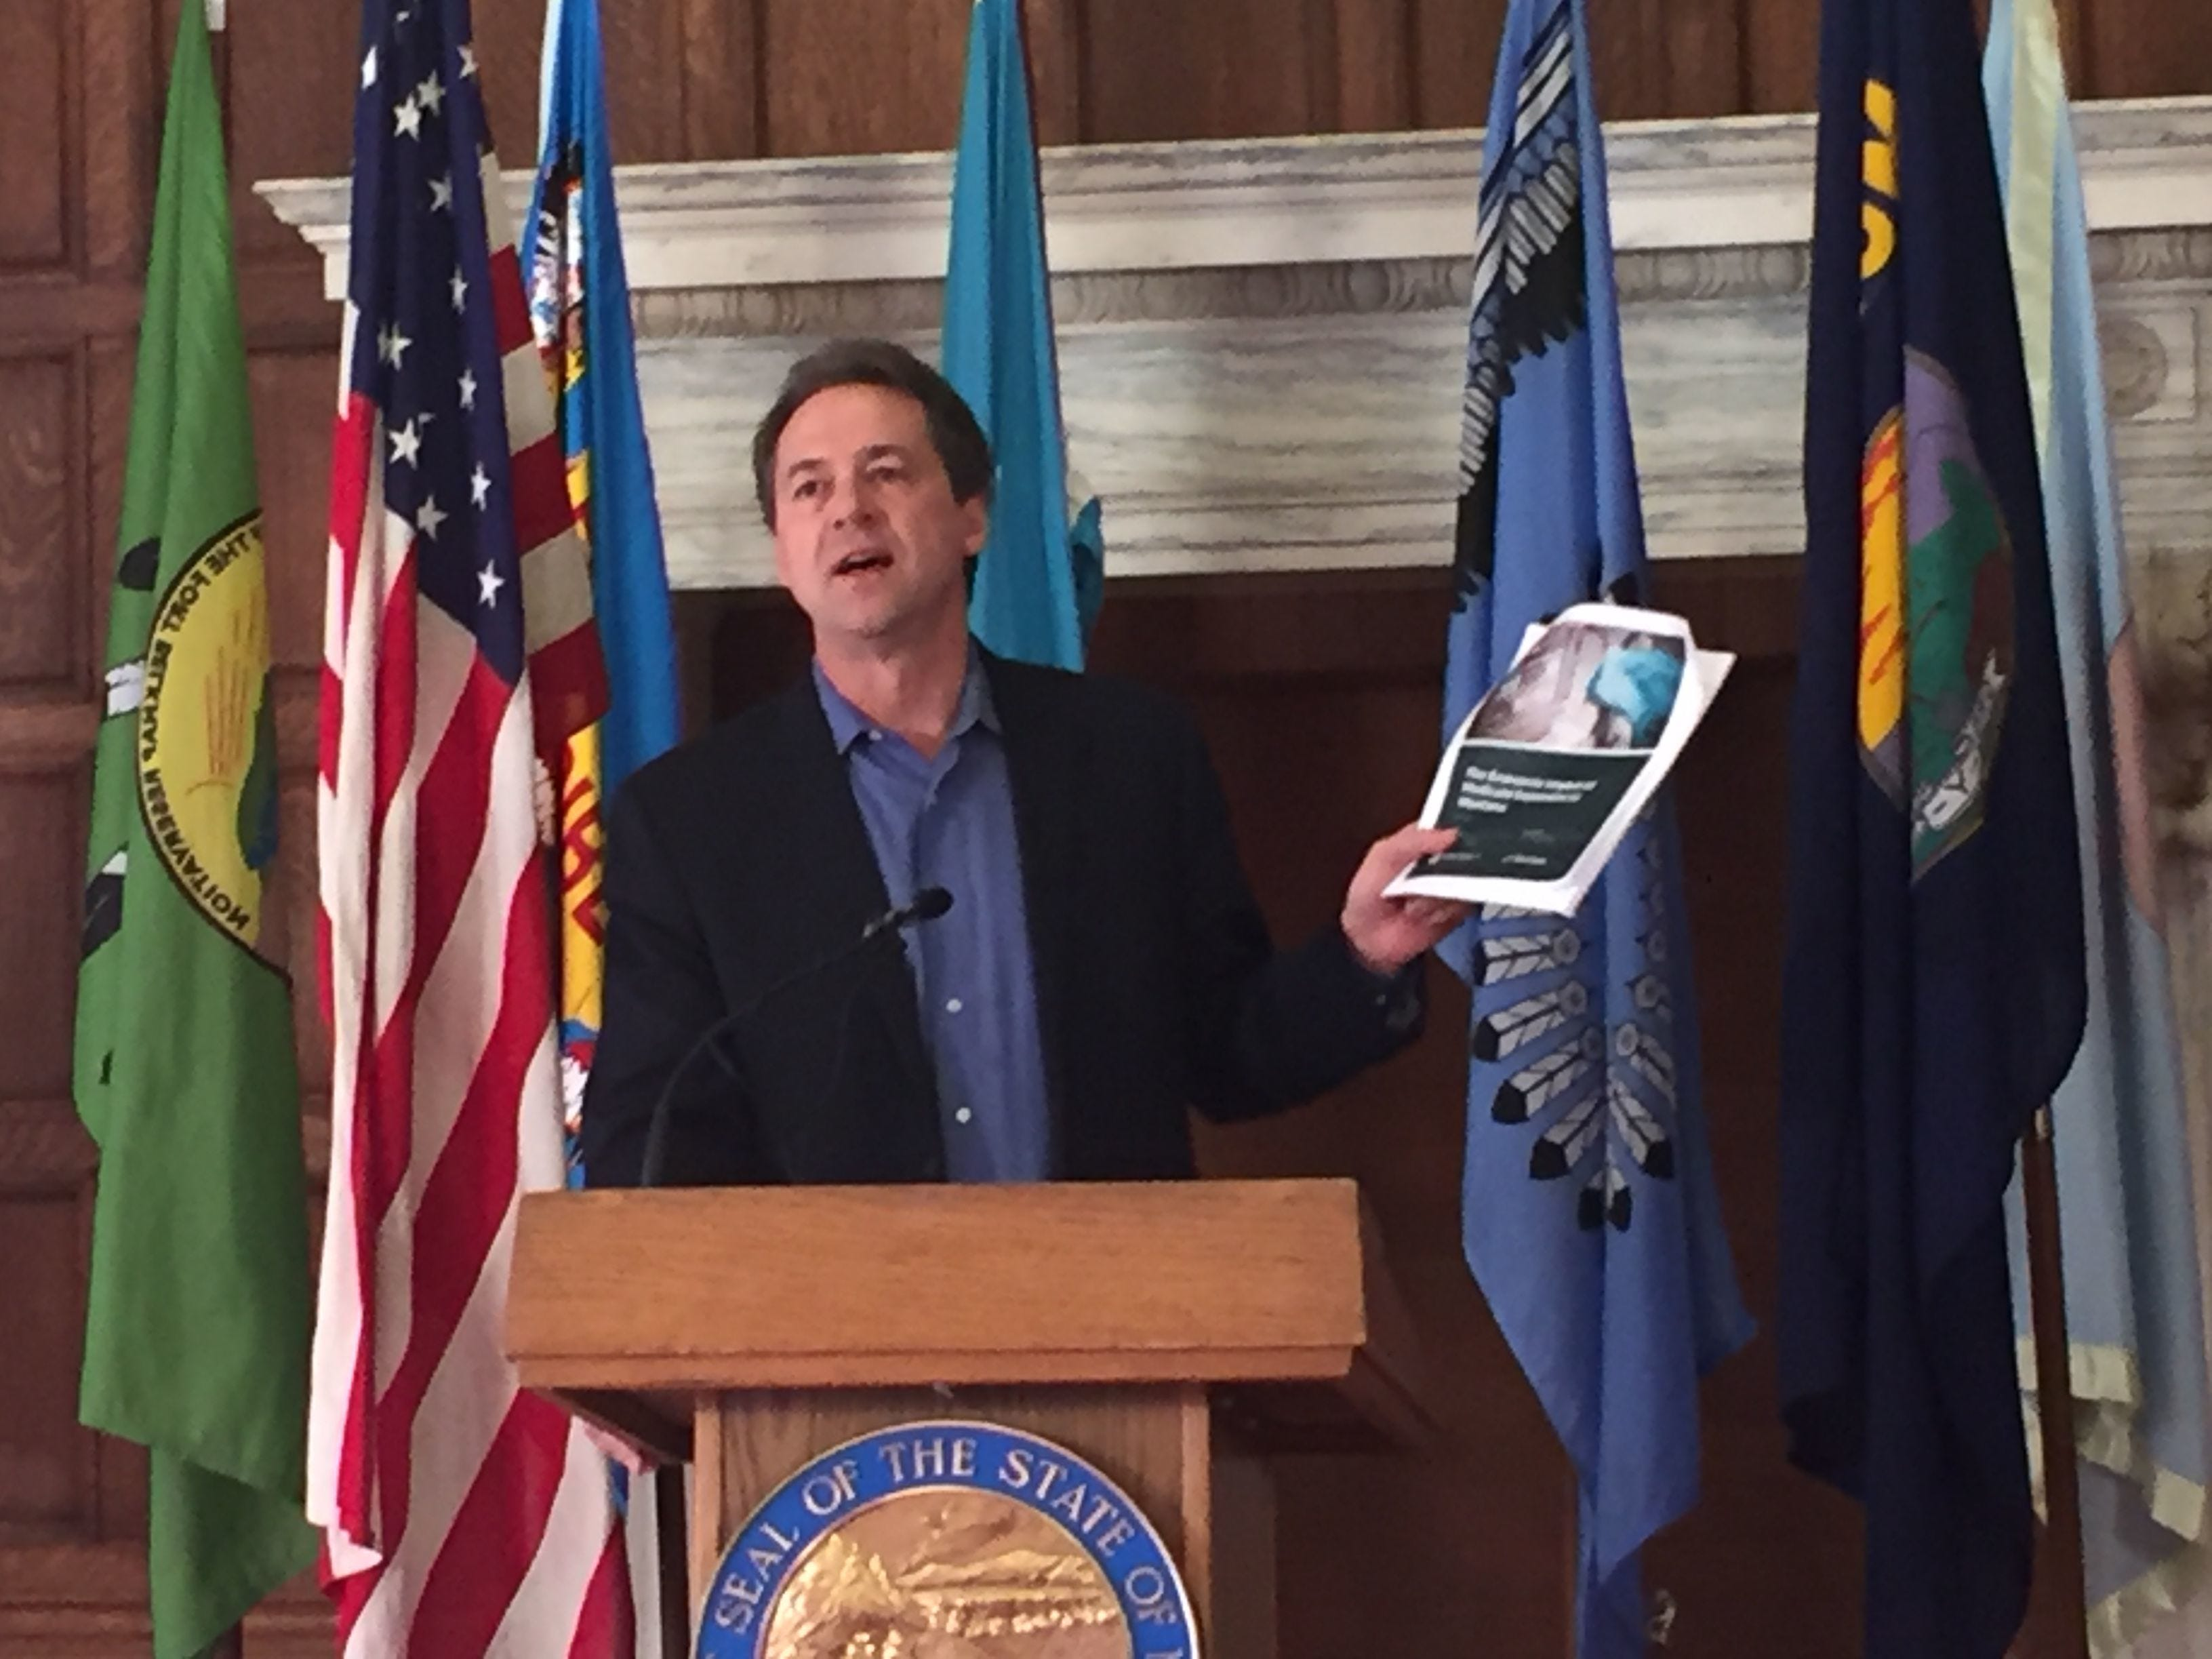 Gov. Steve Bullock holds up a report Wednesday that looks at impacts of Medicaid expansion in Montana. Tribune photo/Phil Drake Gov. Steve Bullock holds up a report Wednesday that looks at impacts of Medicaid expansion in Montana.